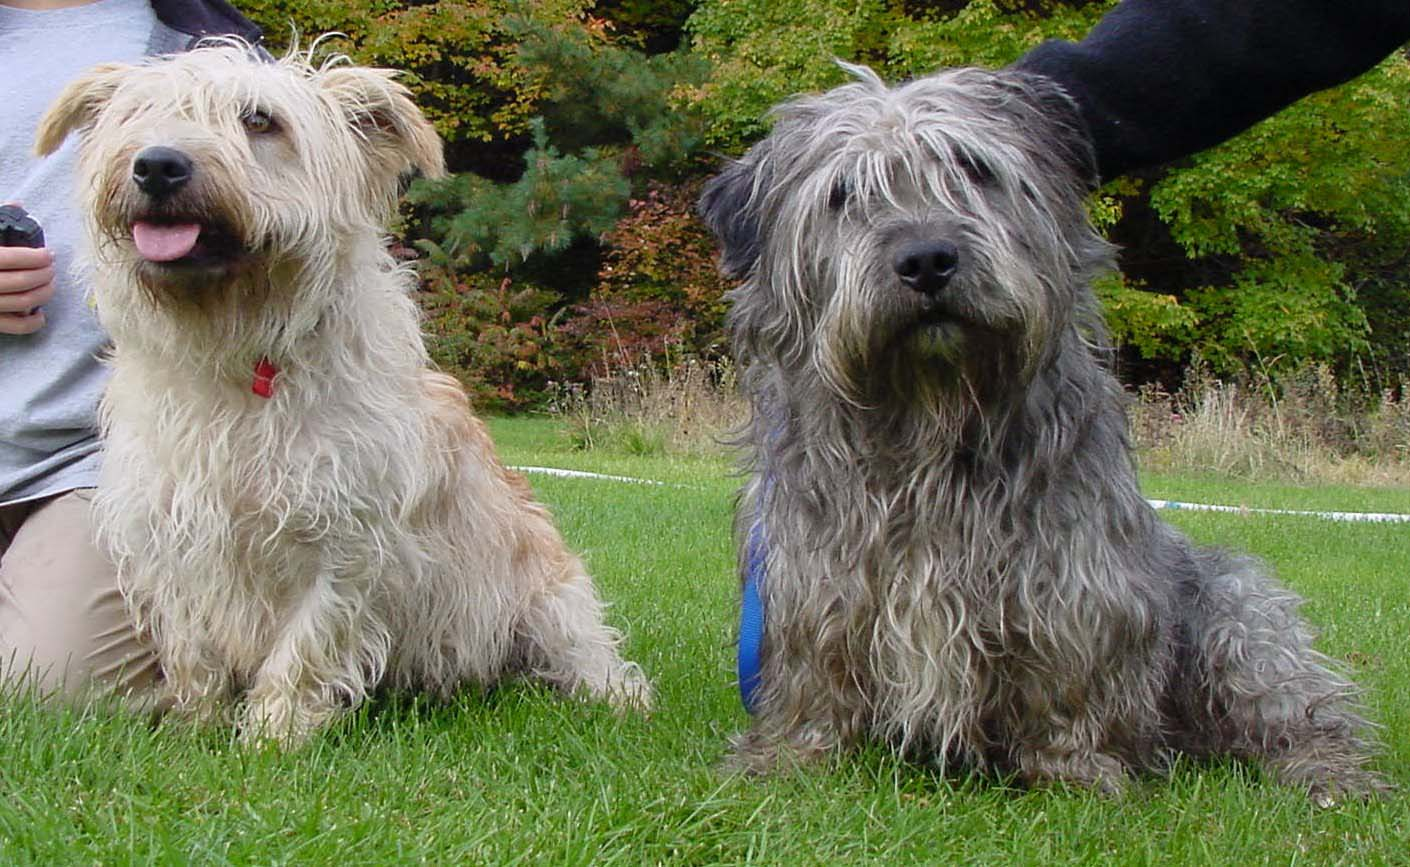 Two glen of imaal terrier dogs photo and wallpaper beautiful two two glen of imaal terrier dogs photo altavistaventures